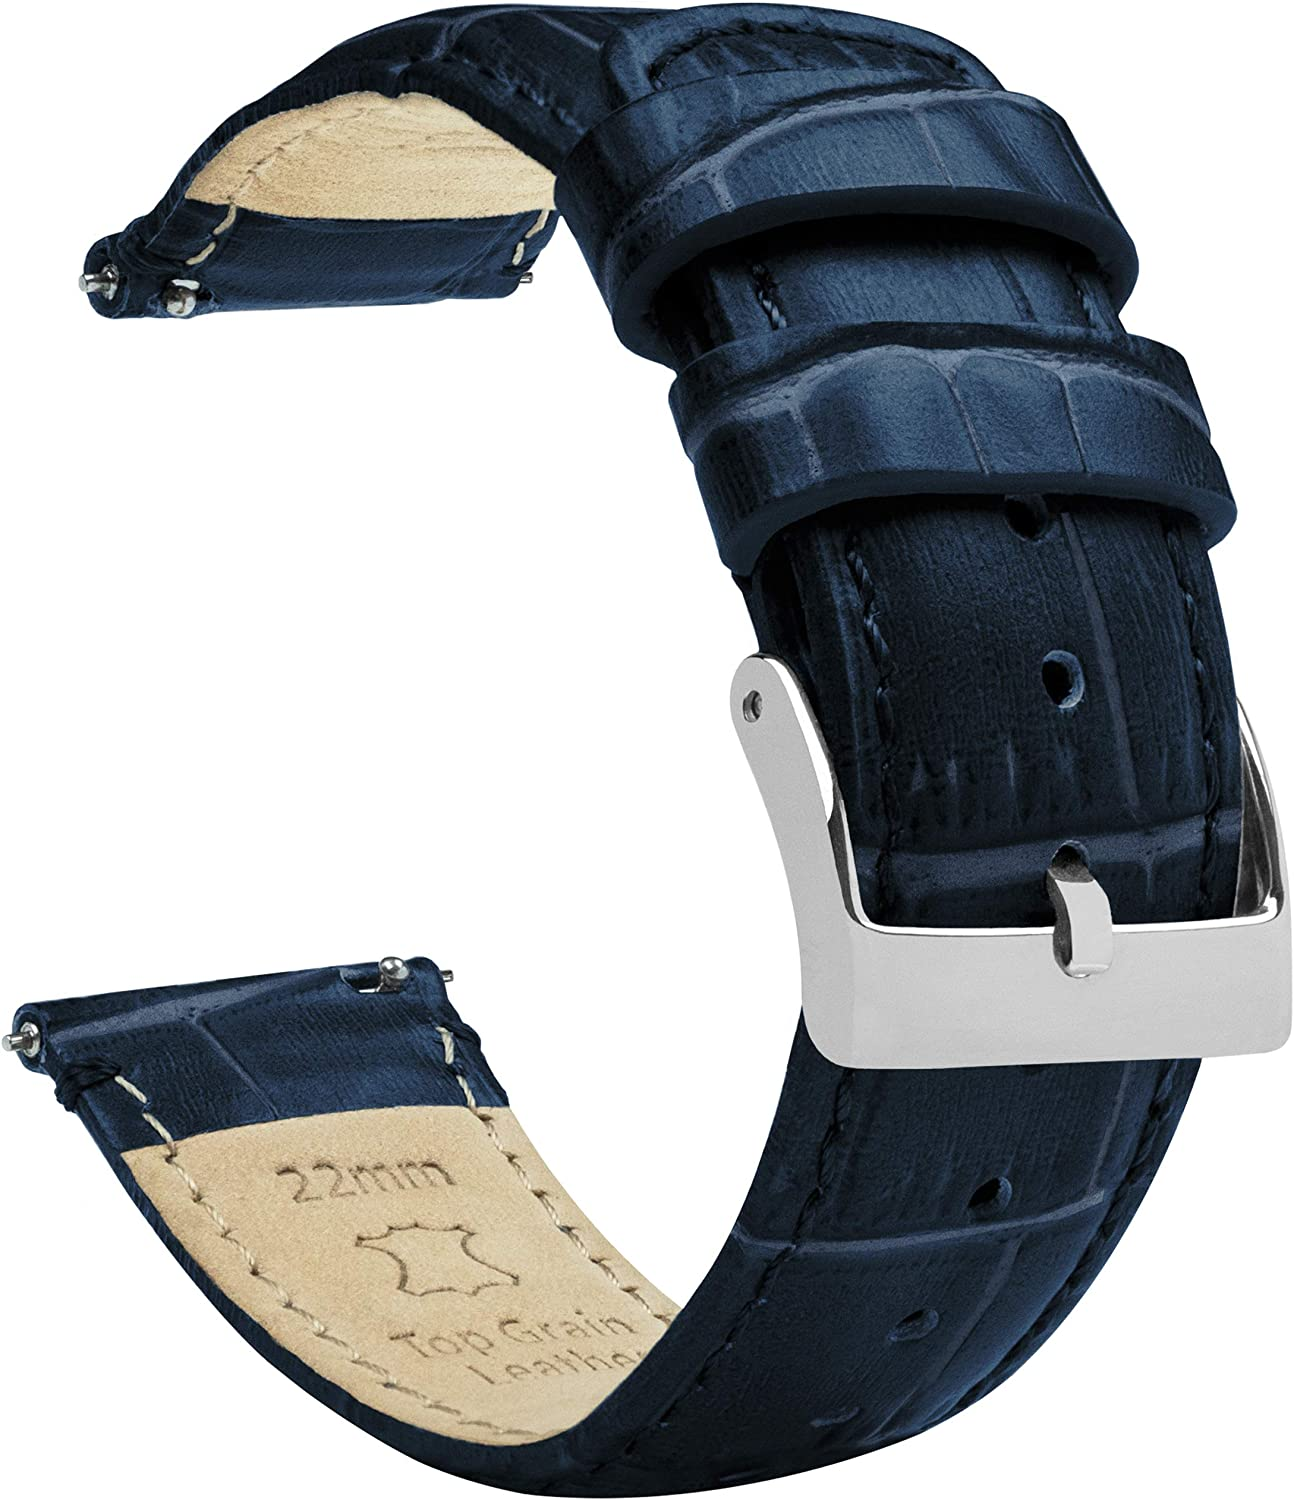 Barton Alligator Grain - Quick Release Leather Watch Bands - Choose Color - 18mm, 20mm or 22mm